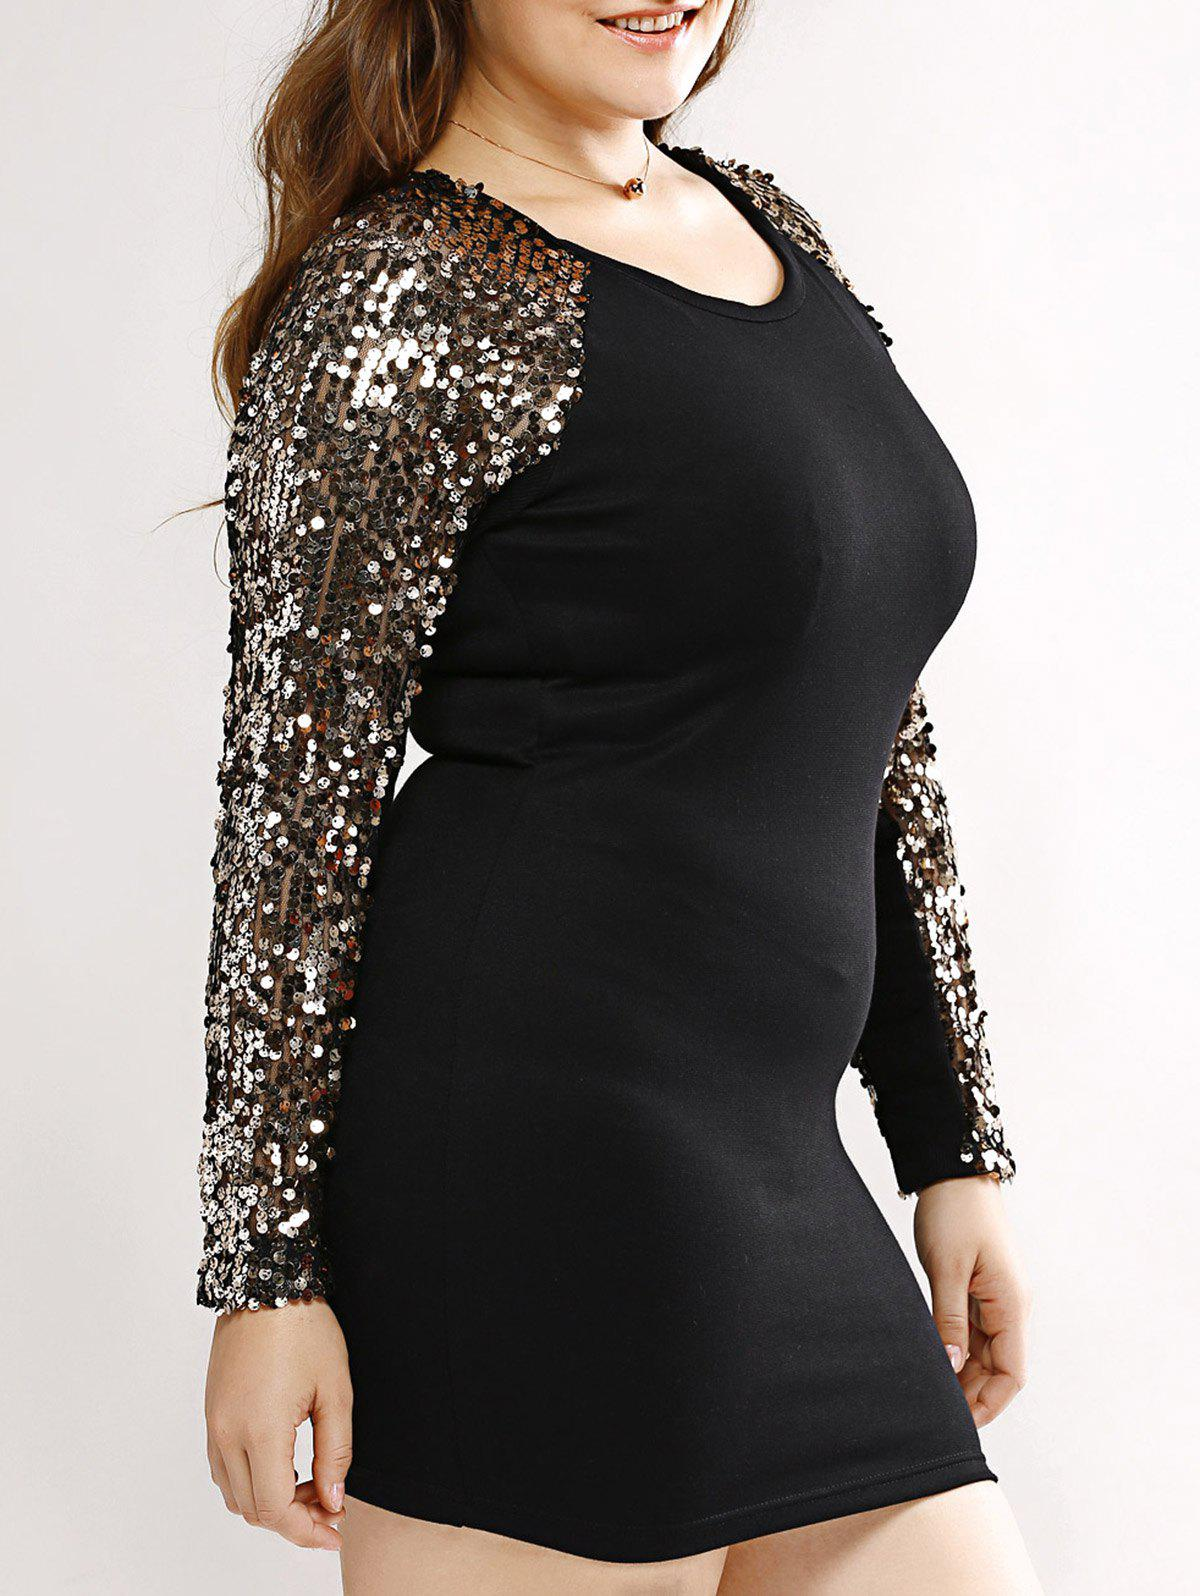 2018 Plus Size Bodycon Long Sleeve Sequin T Shirt Dress BLACK ...